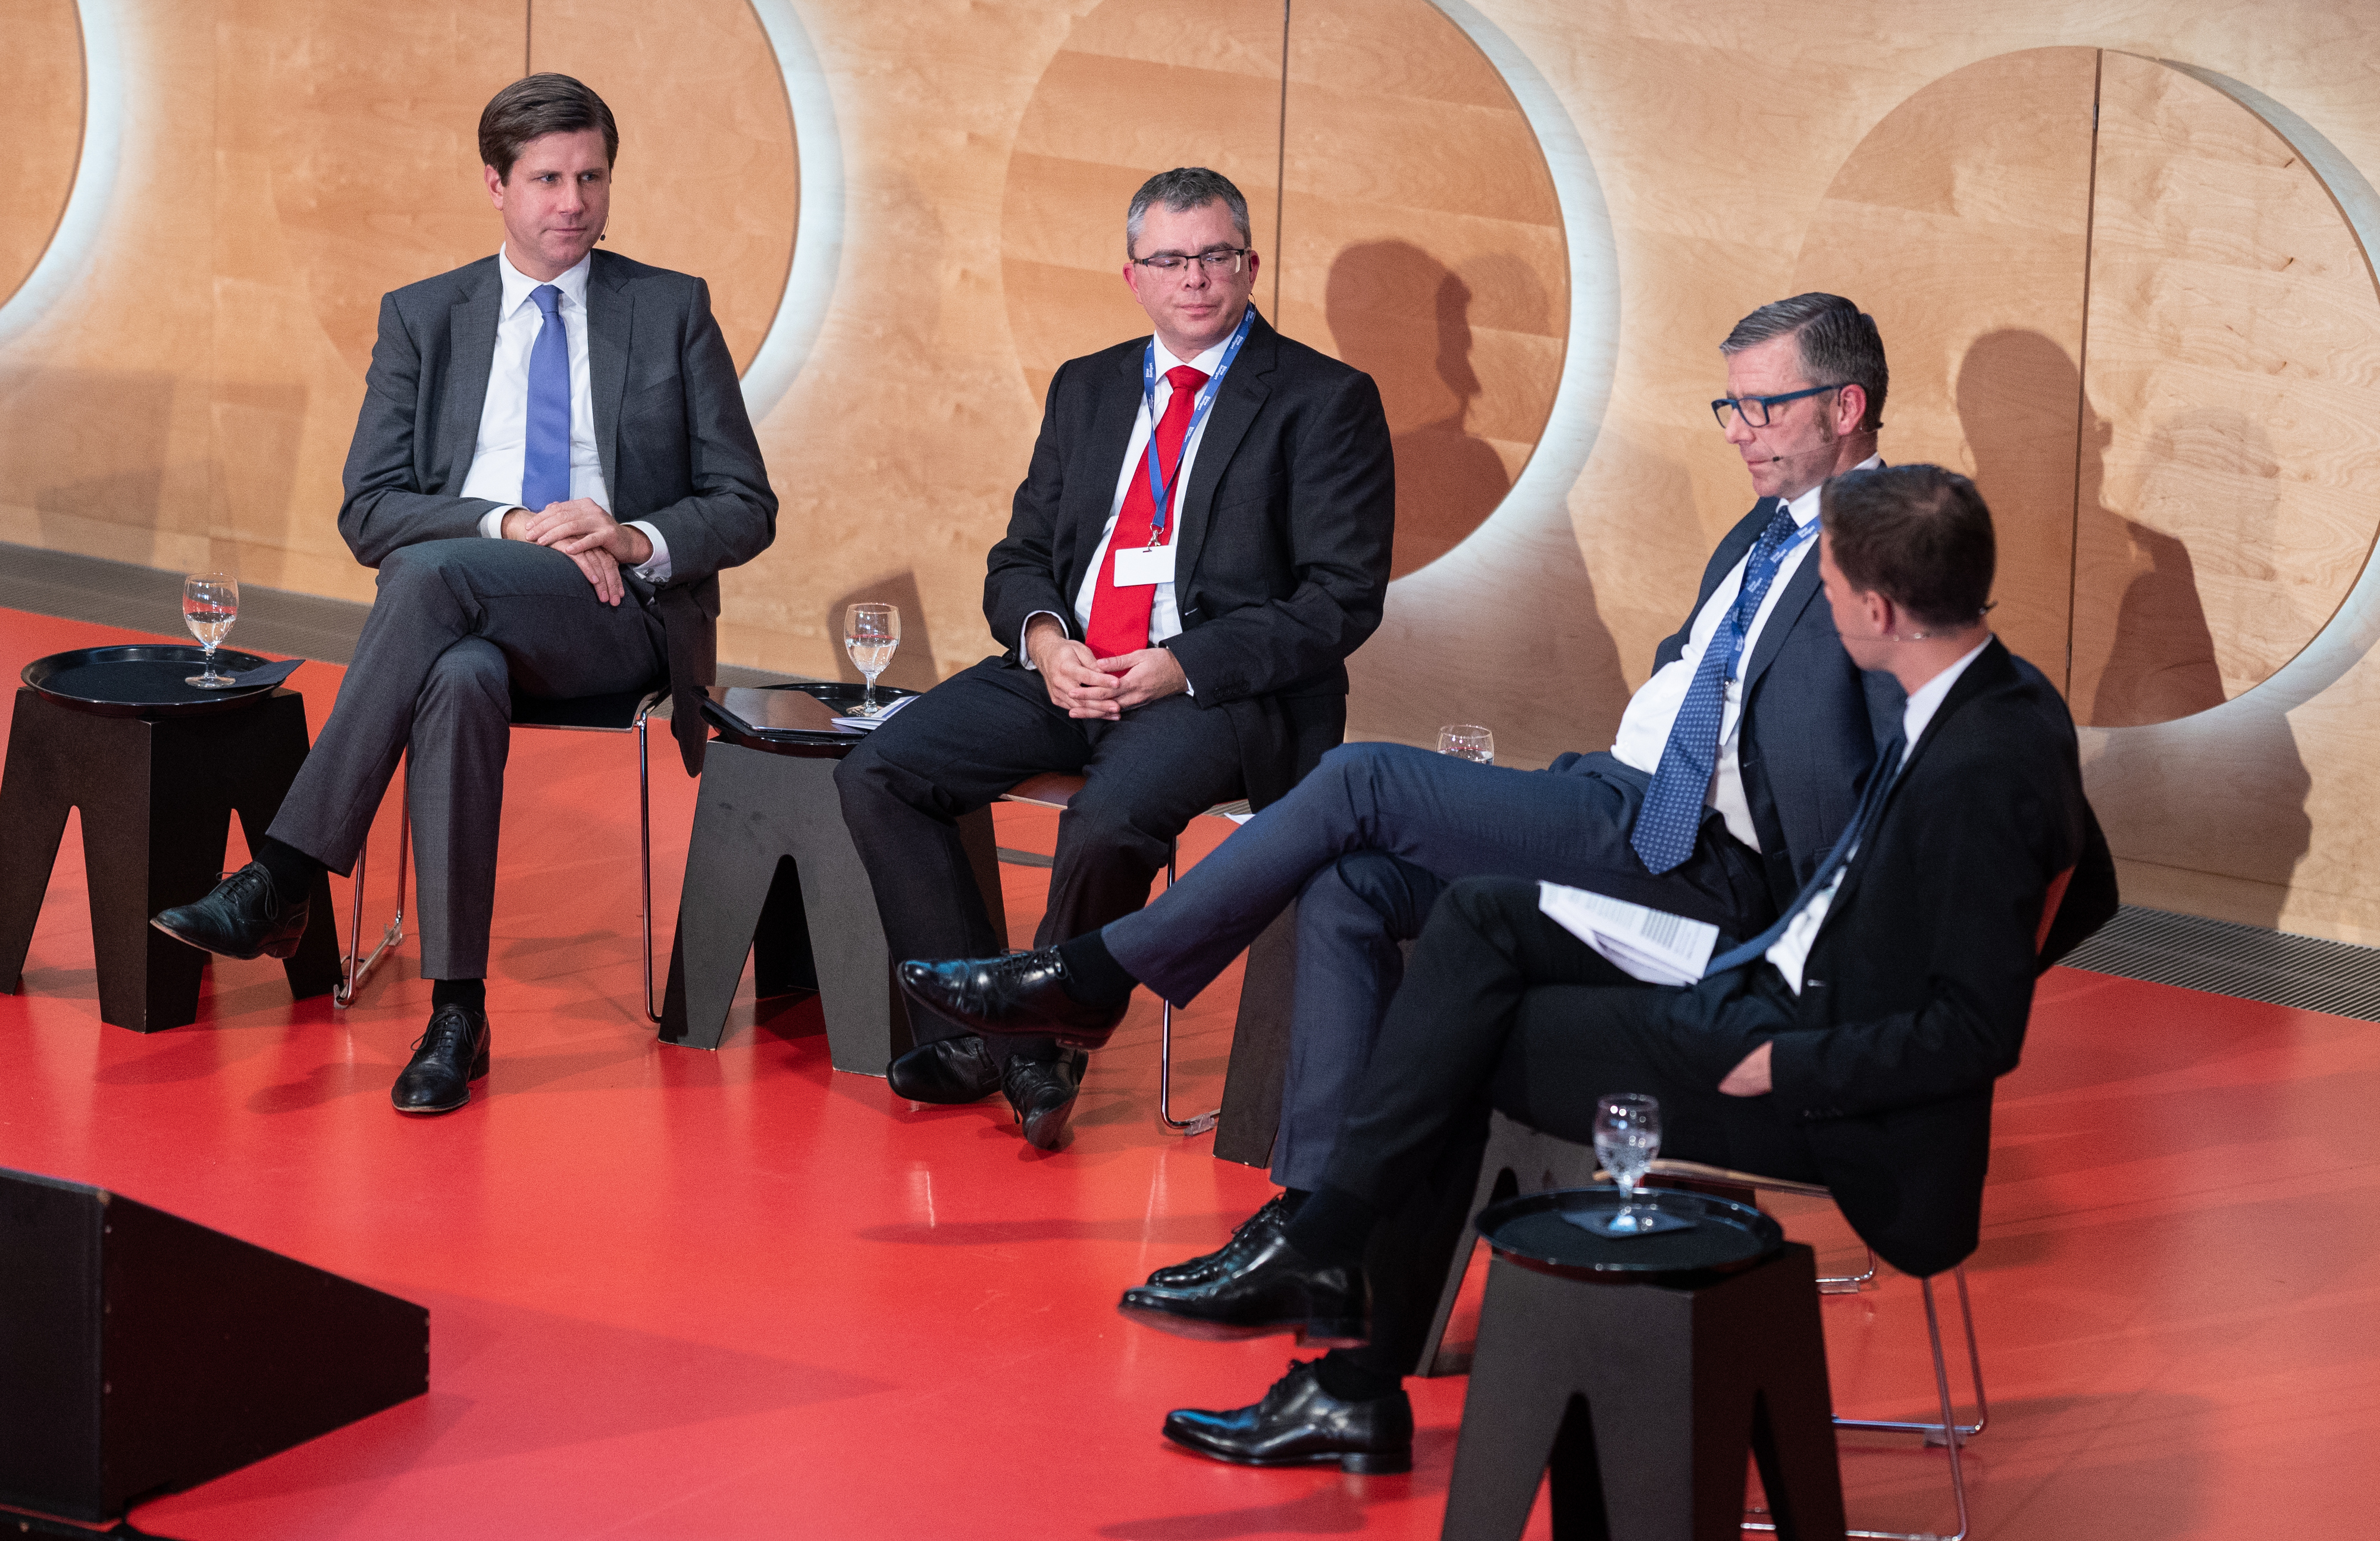 191125_mifid_Podiumsdiskussion 2